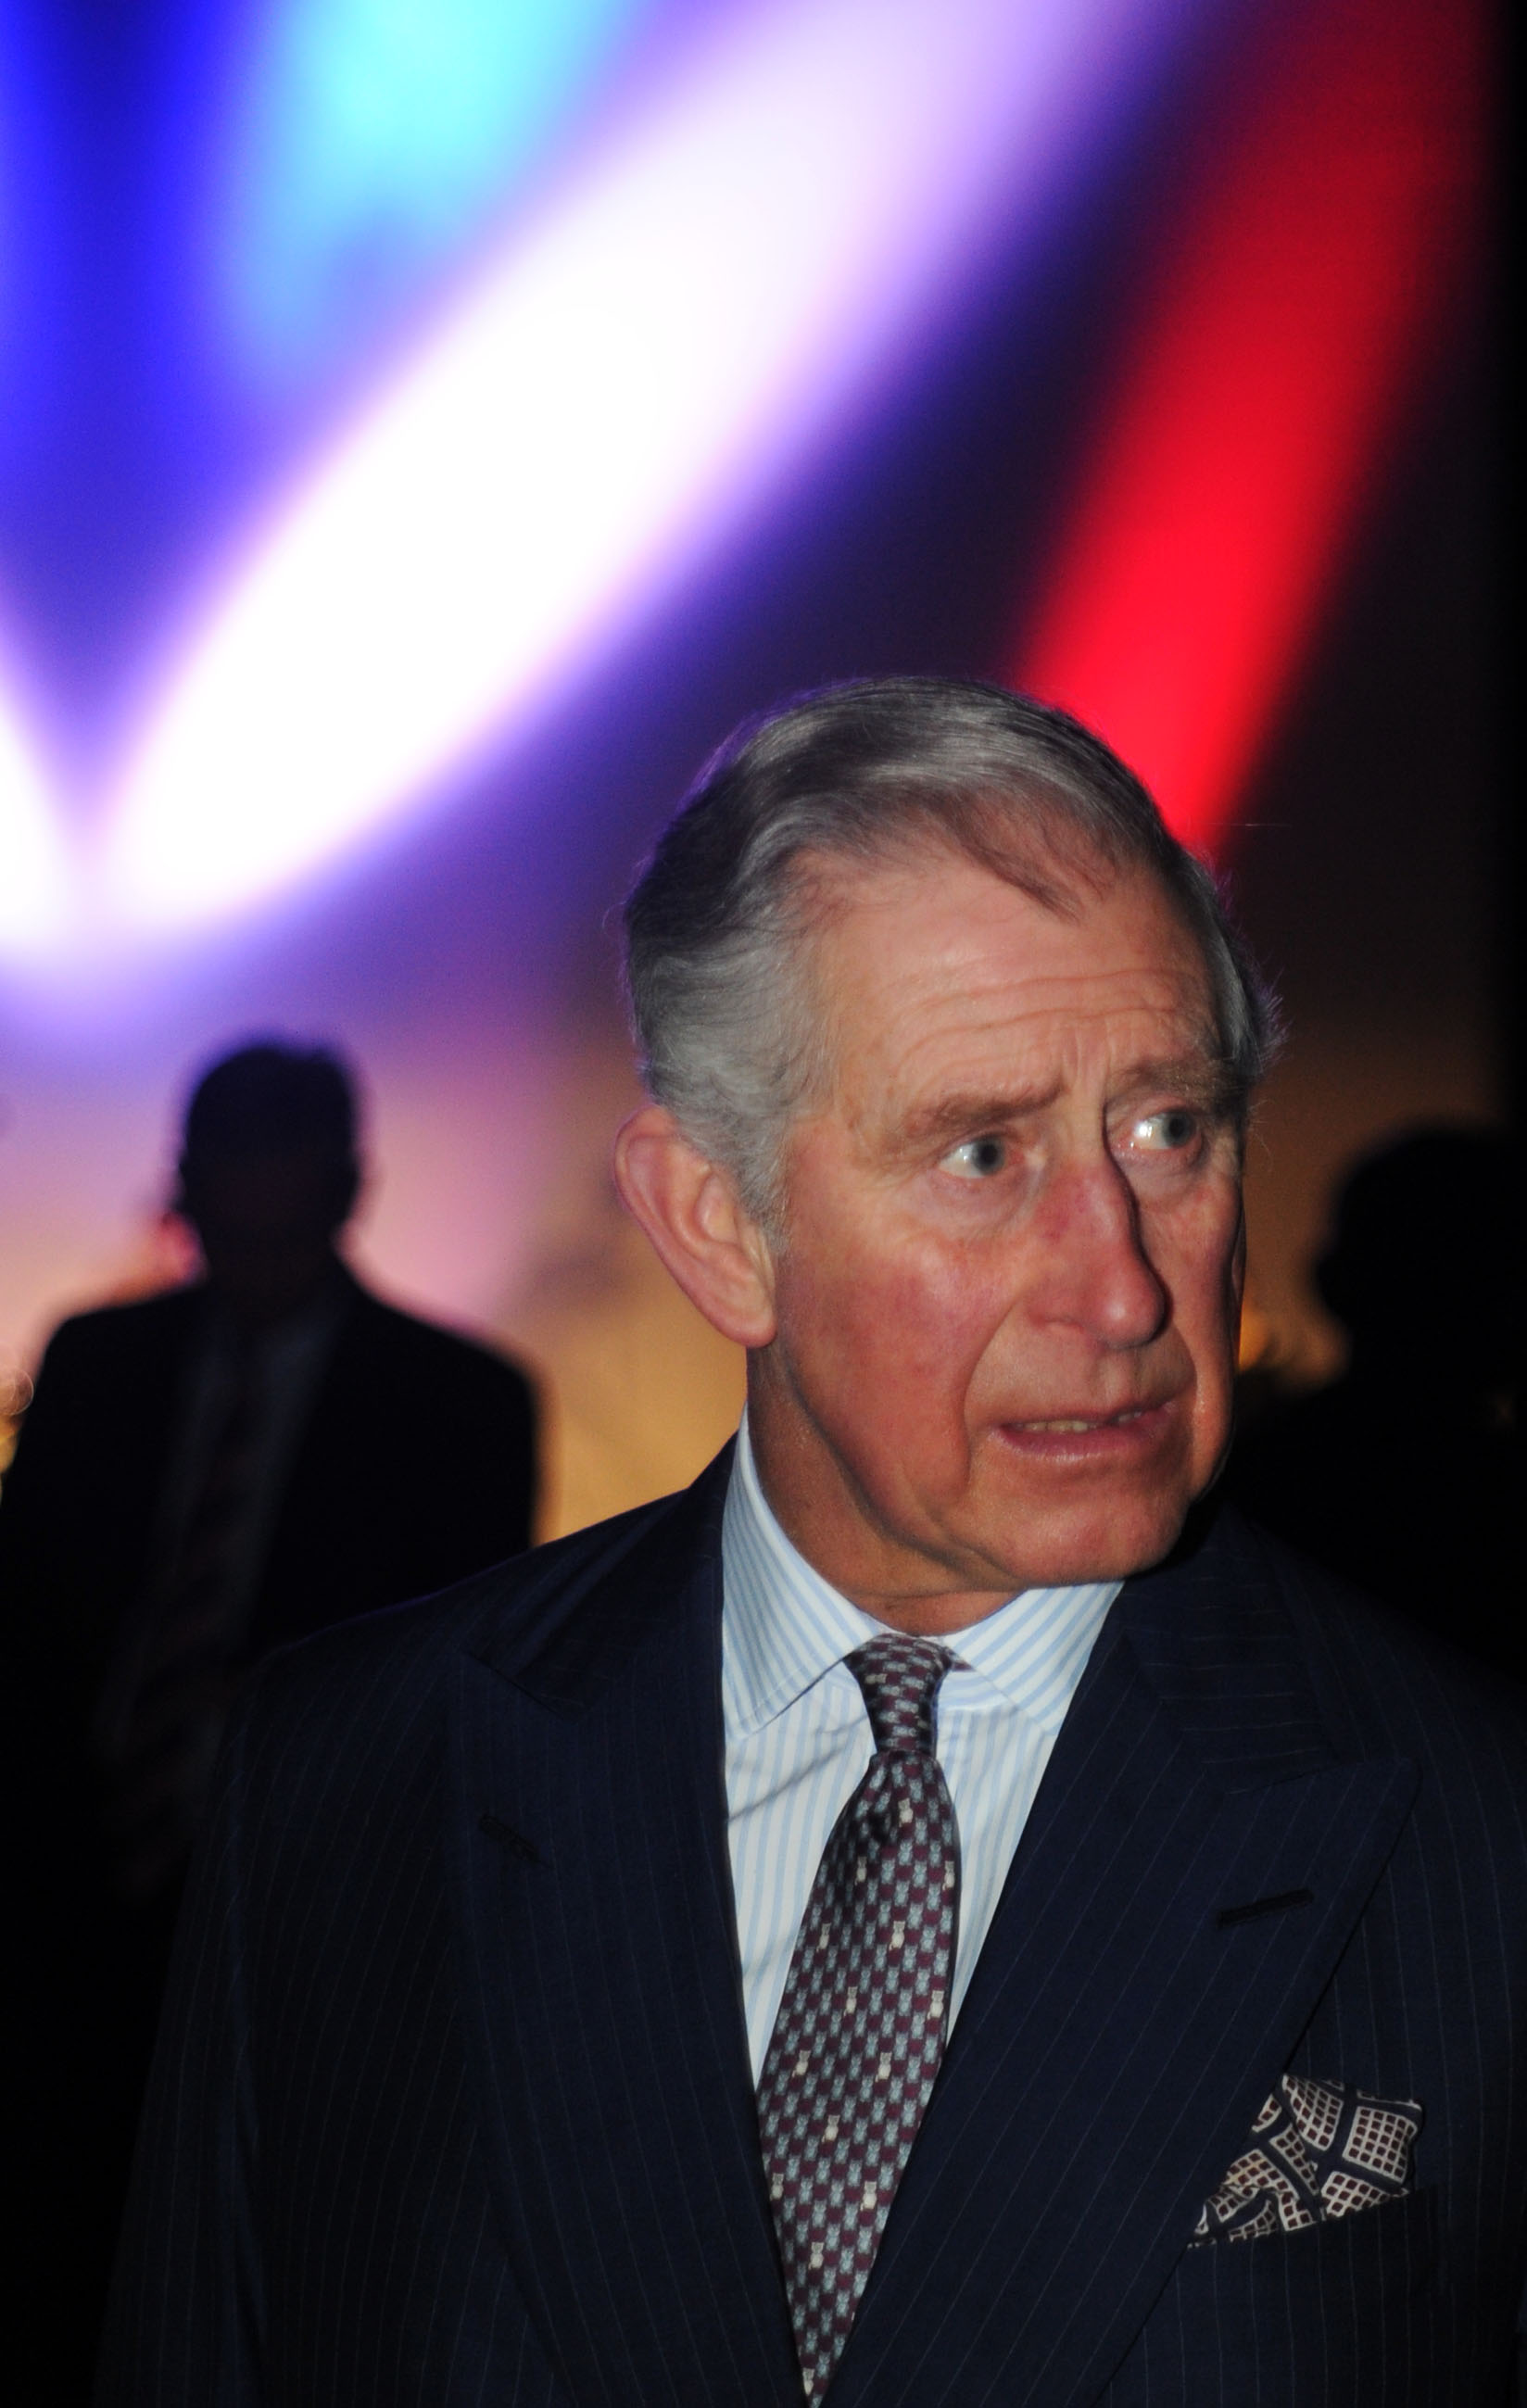 VIDEO: Prince Charles and Camilla visit Essex